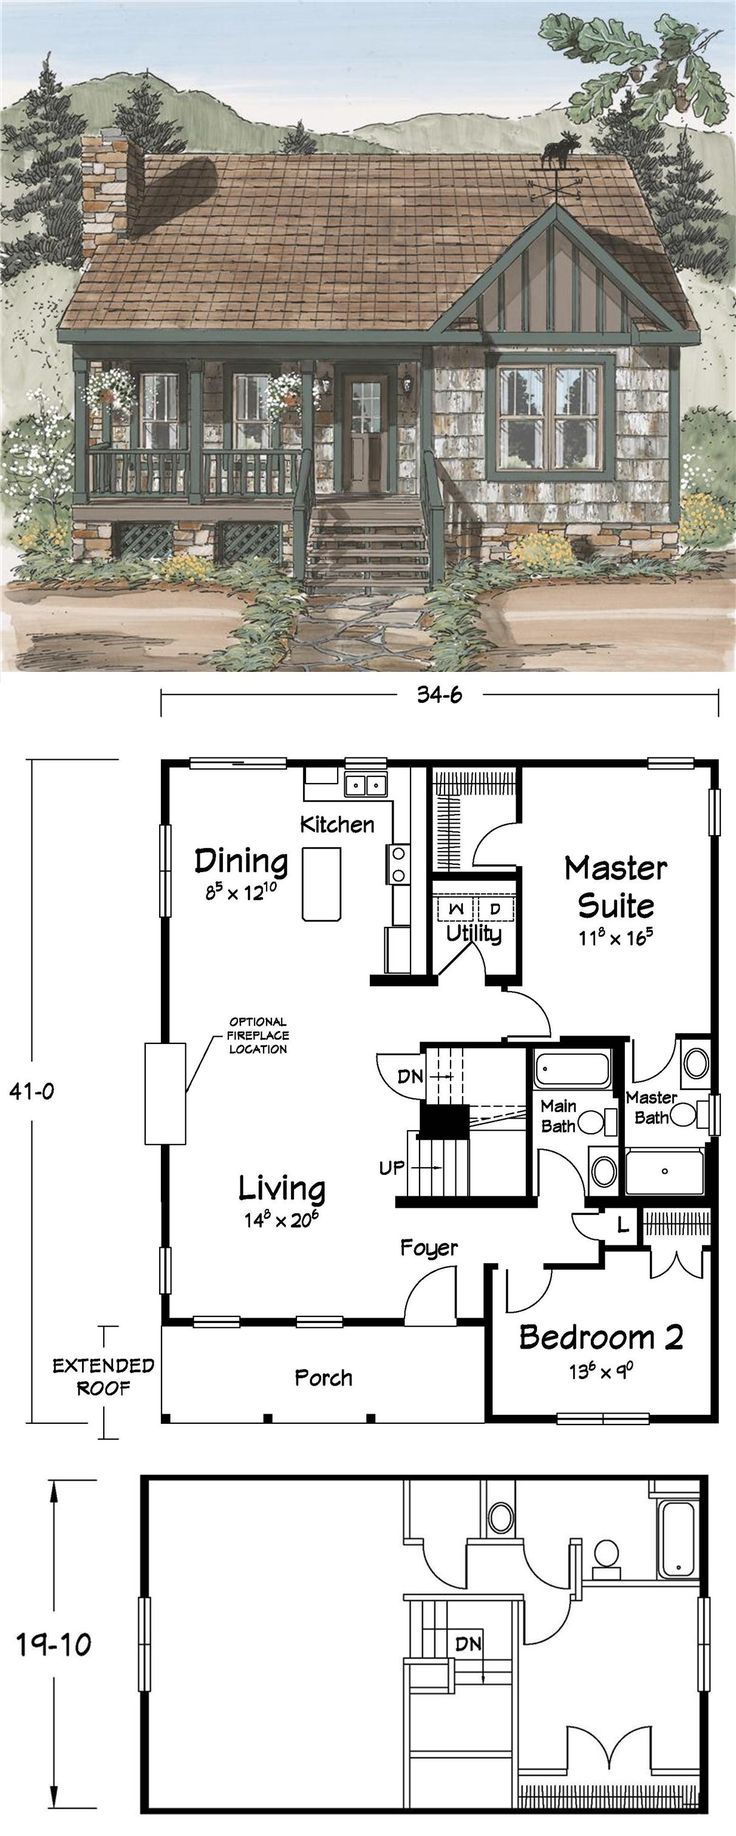 Cute floor plans tiny homes pinterest cabin small for Little house blueprints